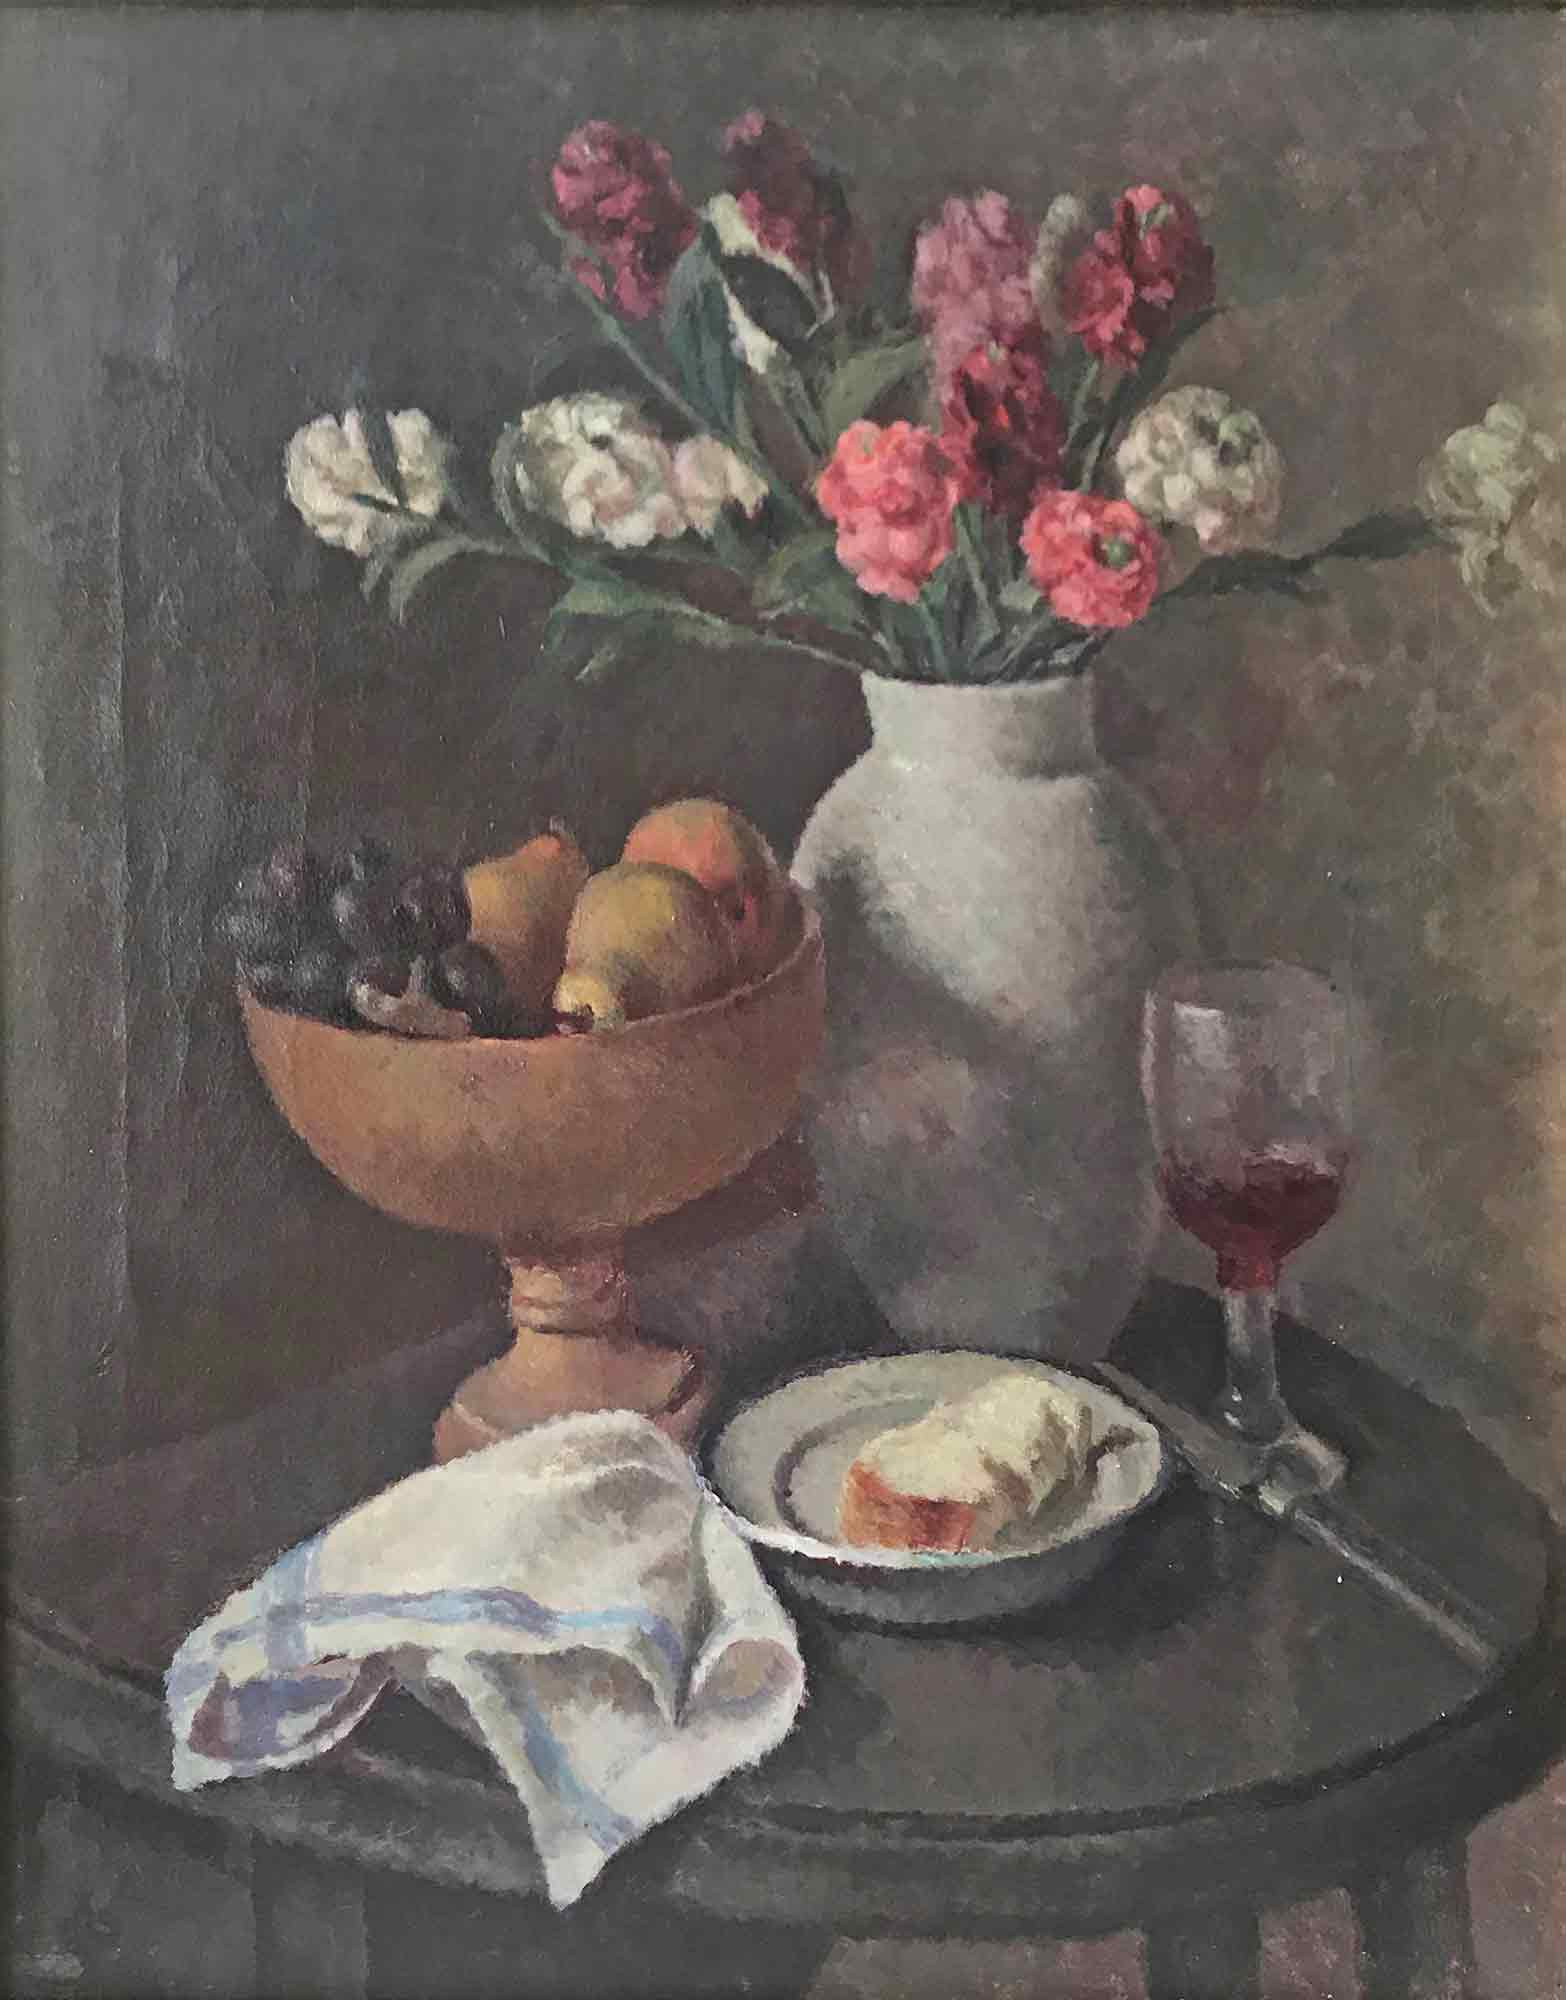 Dorothy Hepworth 'Pinks in Roger Fry's white pottery vase'